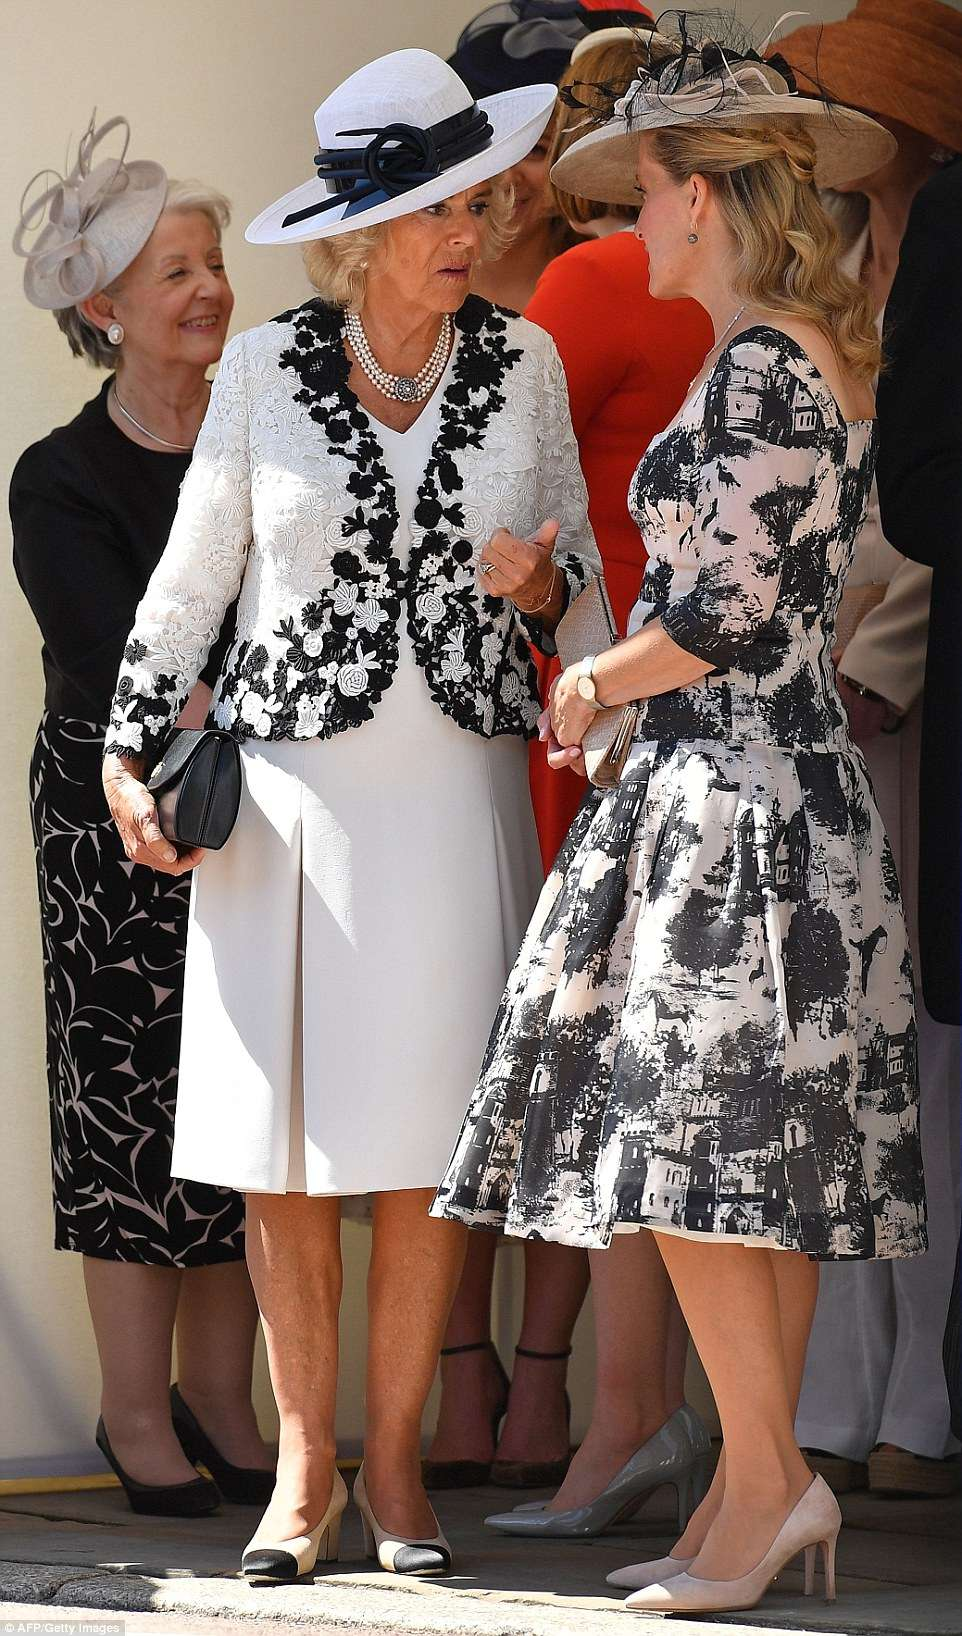 The Duchess of Cornwall (left) and Sophie, Countess of Wessex, (right) looked resplendent in their A-line dresses and bespoke hats